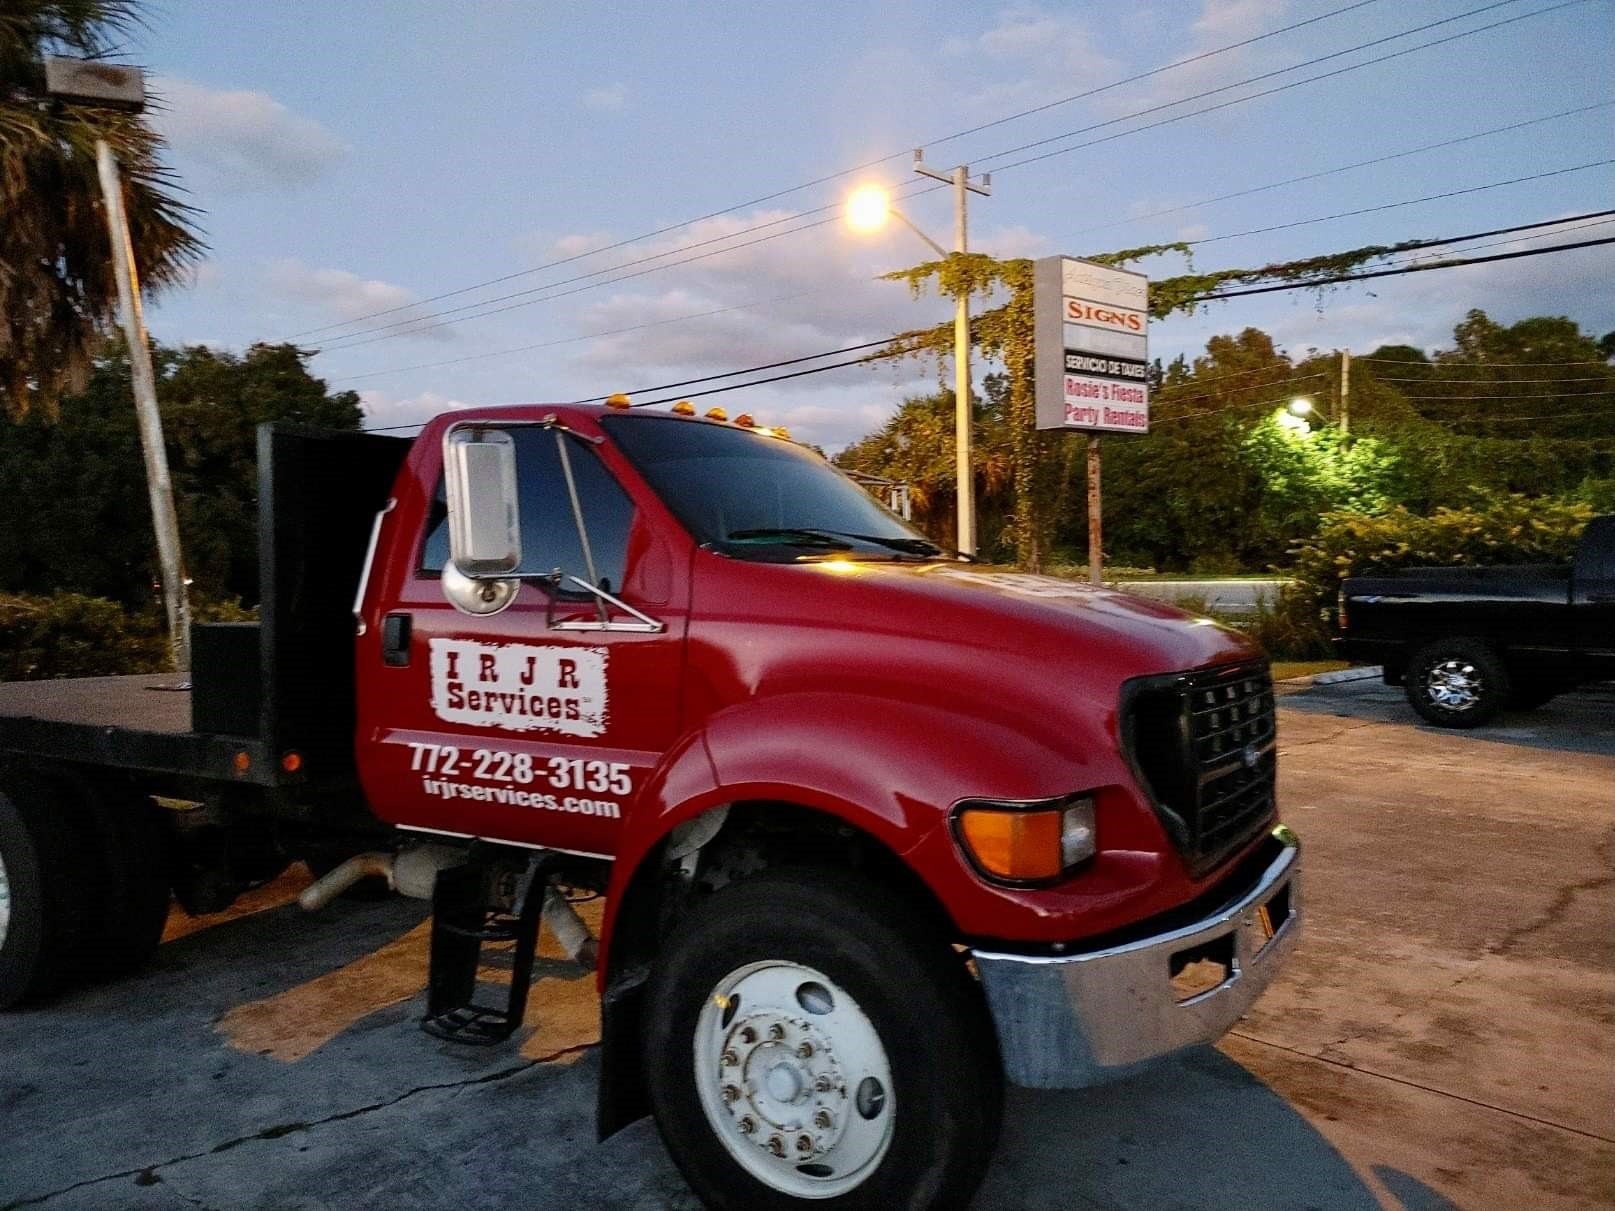 IRJR Services | Indian River Junk Removal Services | New Red Truck with Logo